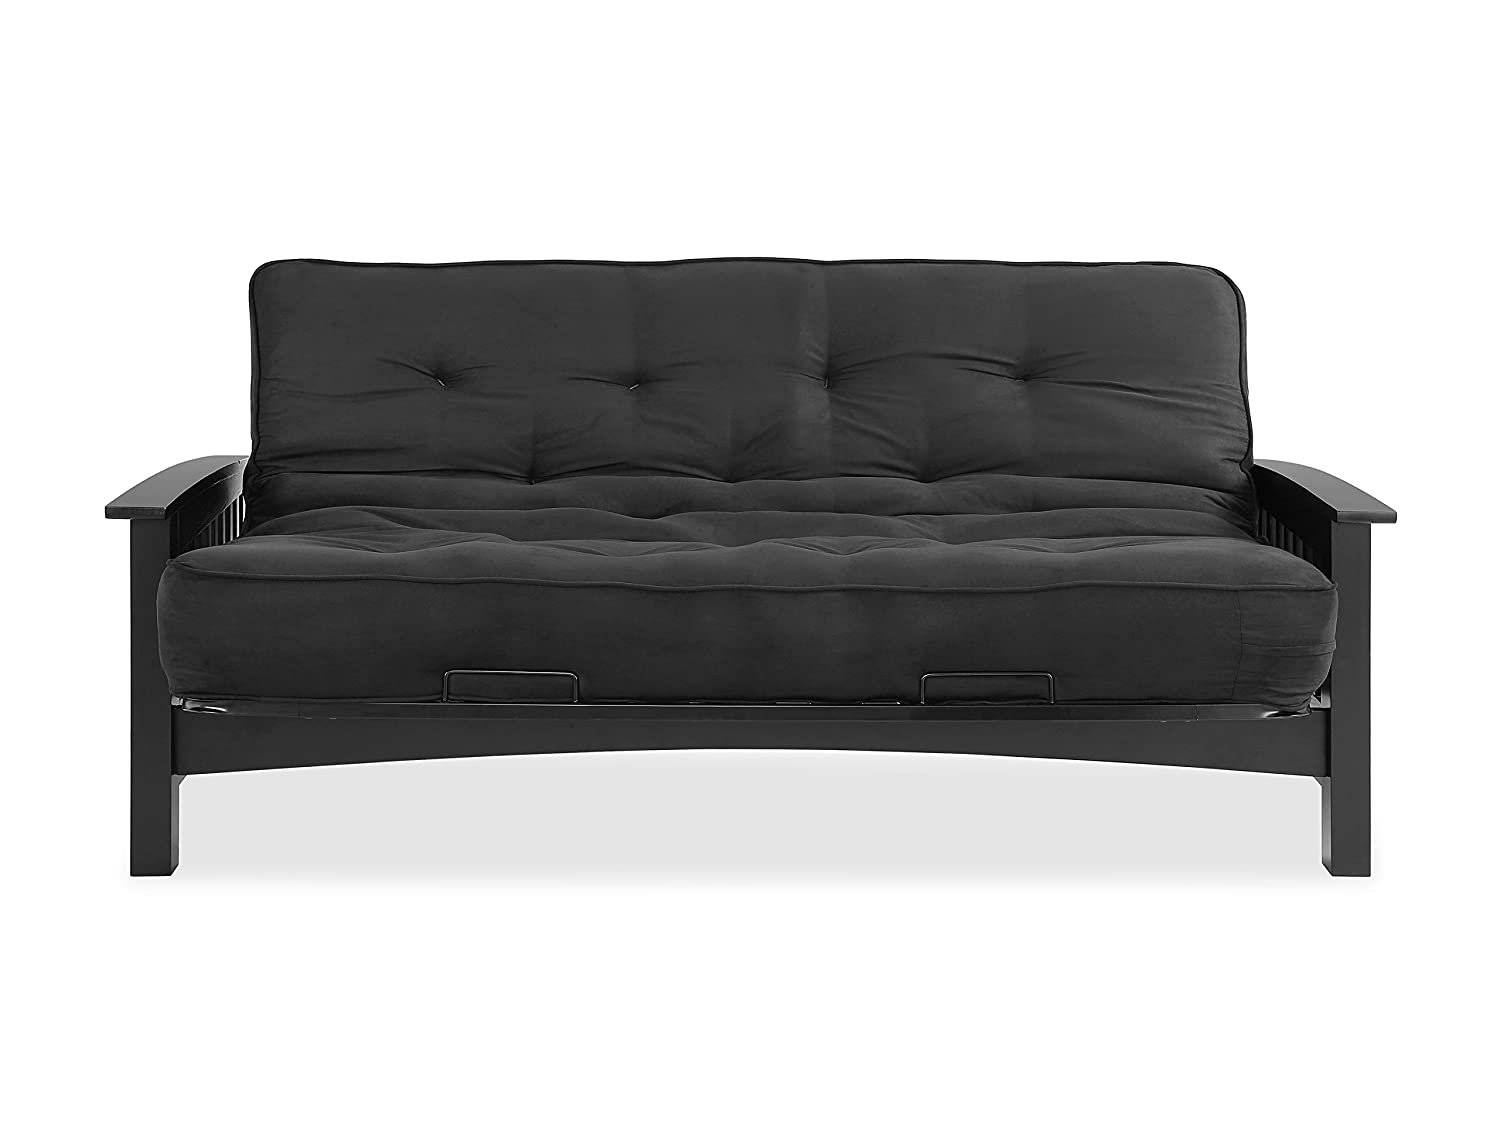 size denver frames futons archives product frame fold waterbeds colorado bi full futon donco category right